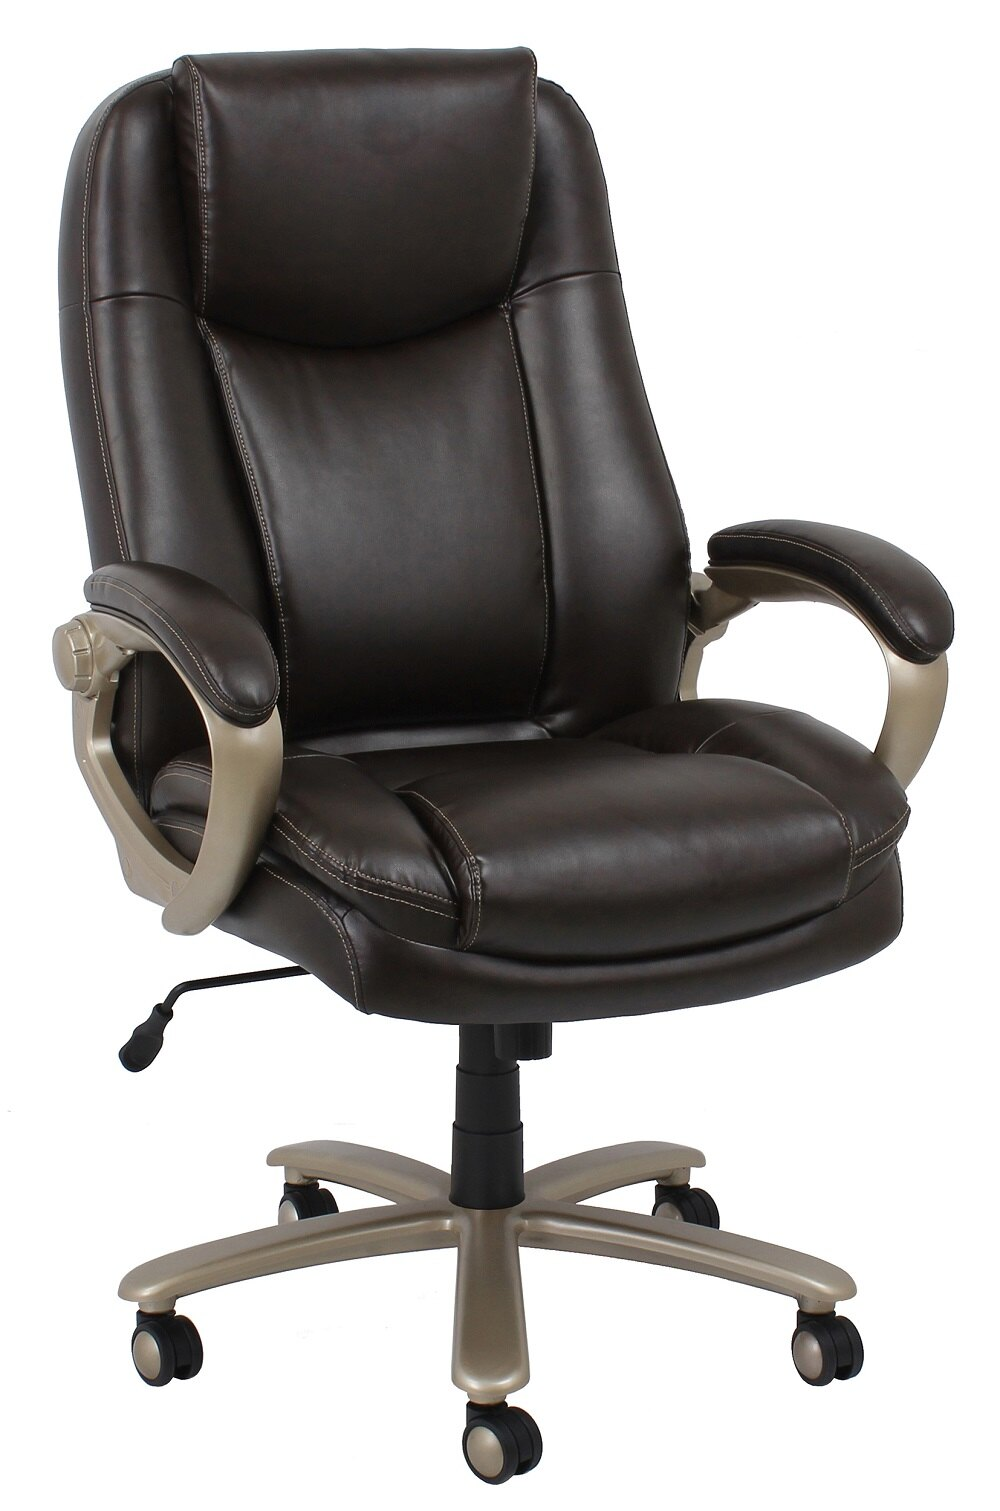 Essentials By Ofm Ess 201 And Tall Leather Executive Office Chair With Arms